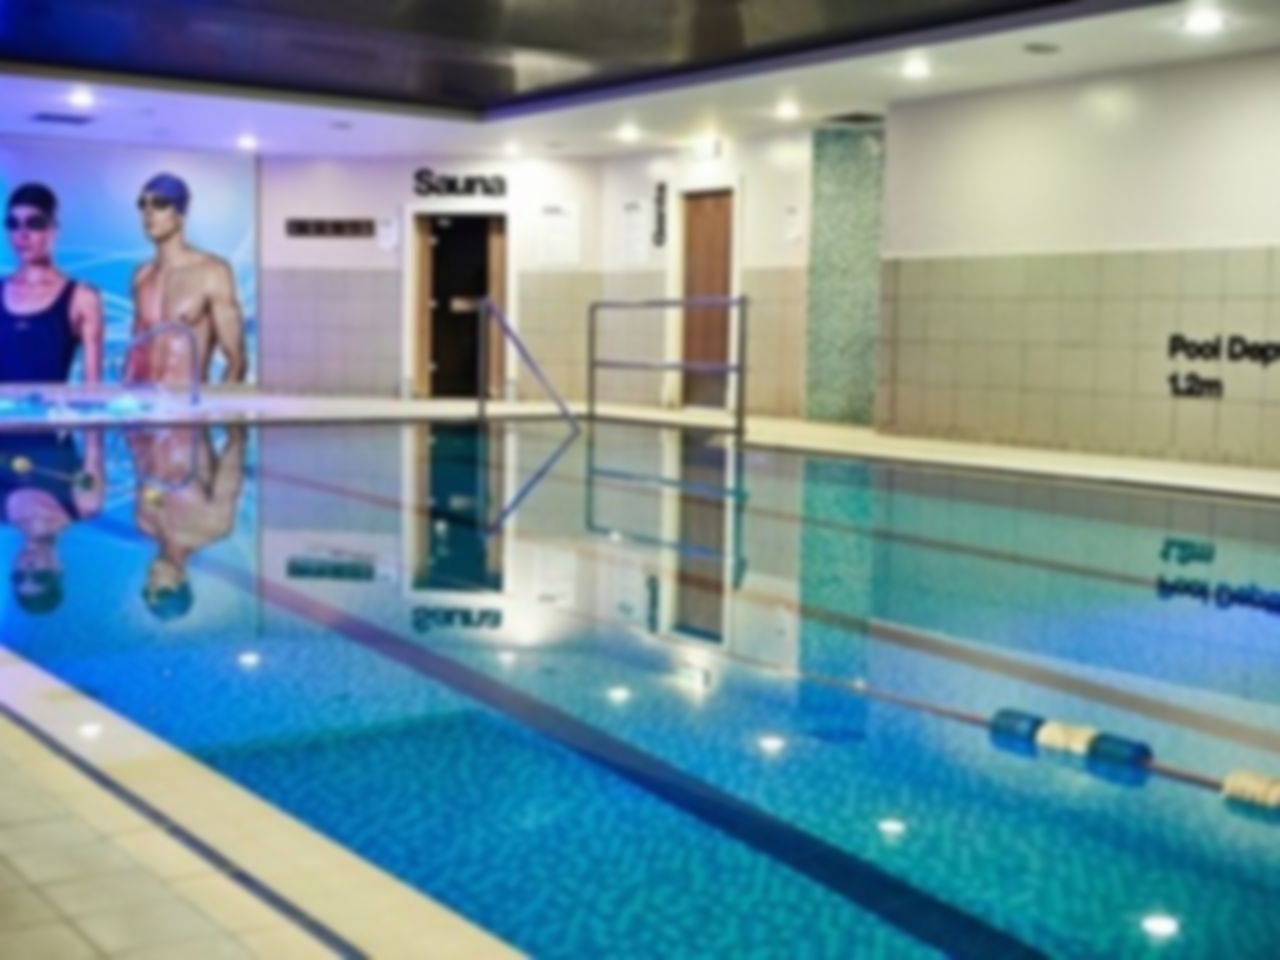 Sports direct fitness argyle st flexible gym passes g1 - Northfield swimming pool timetable ...